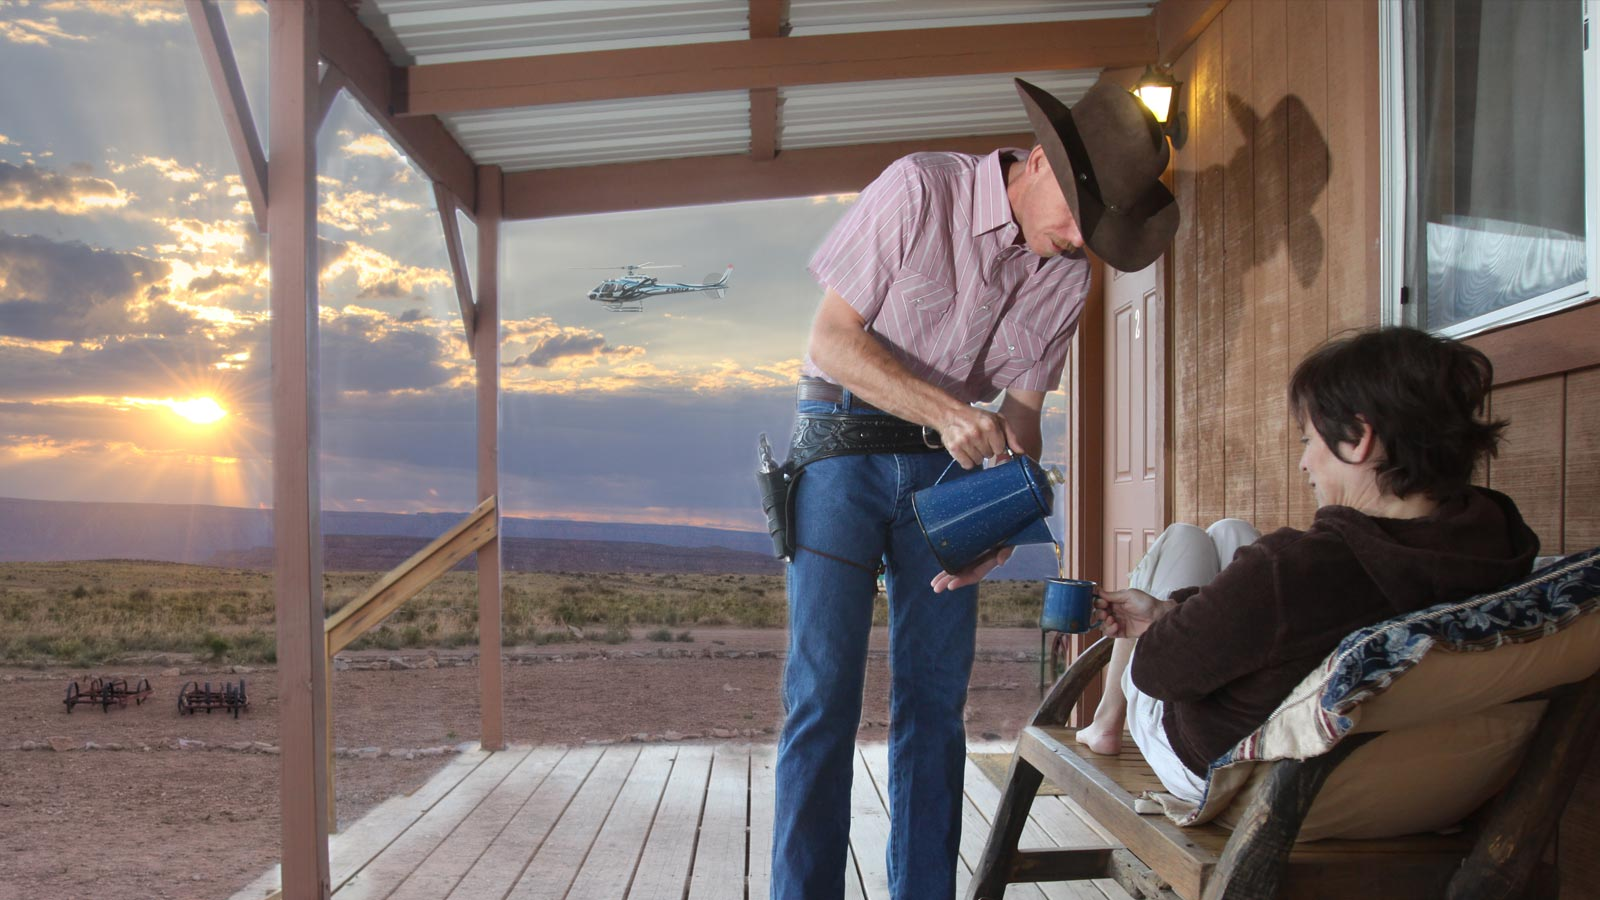 Grand Canyon West Hualapai Ranch Overnight Cabin Stay by Helicopter & Ground Tour – $699